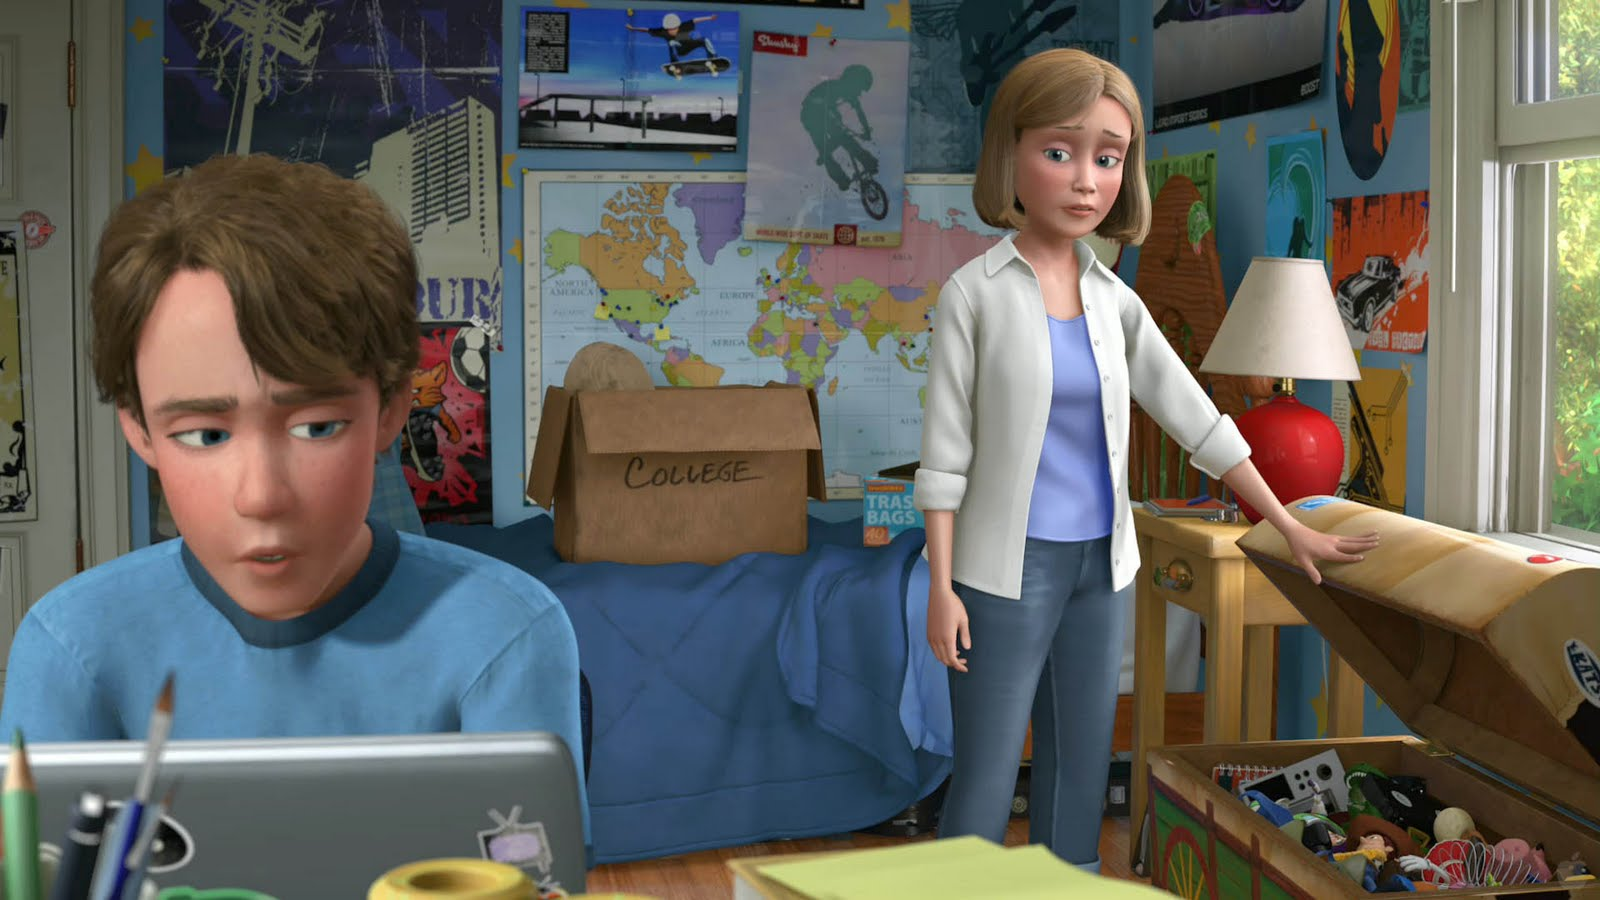 toy_story_3_-_andy_n_his_mama.jpg